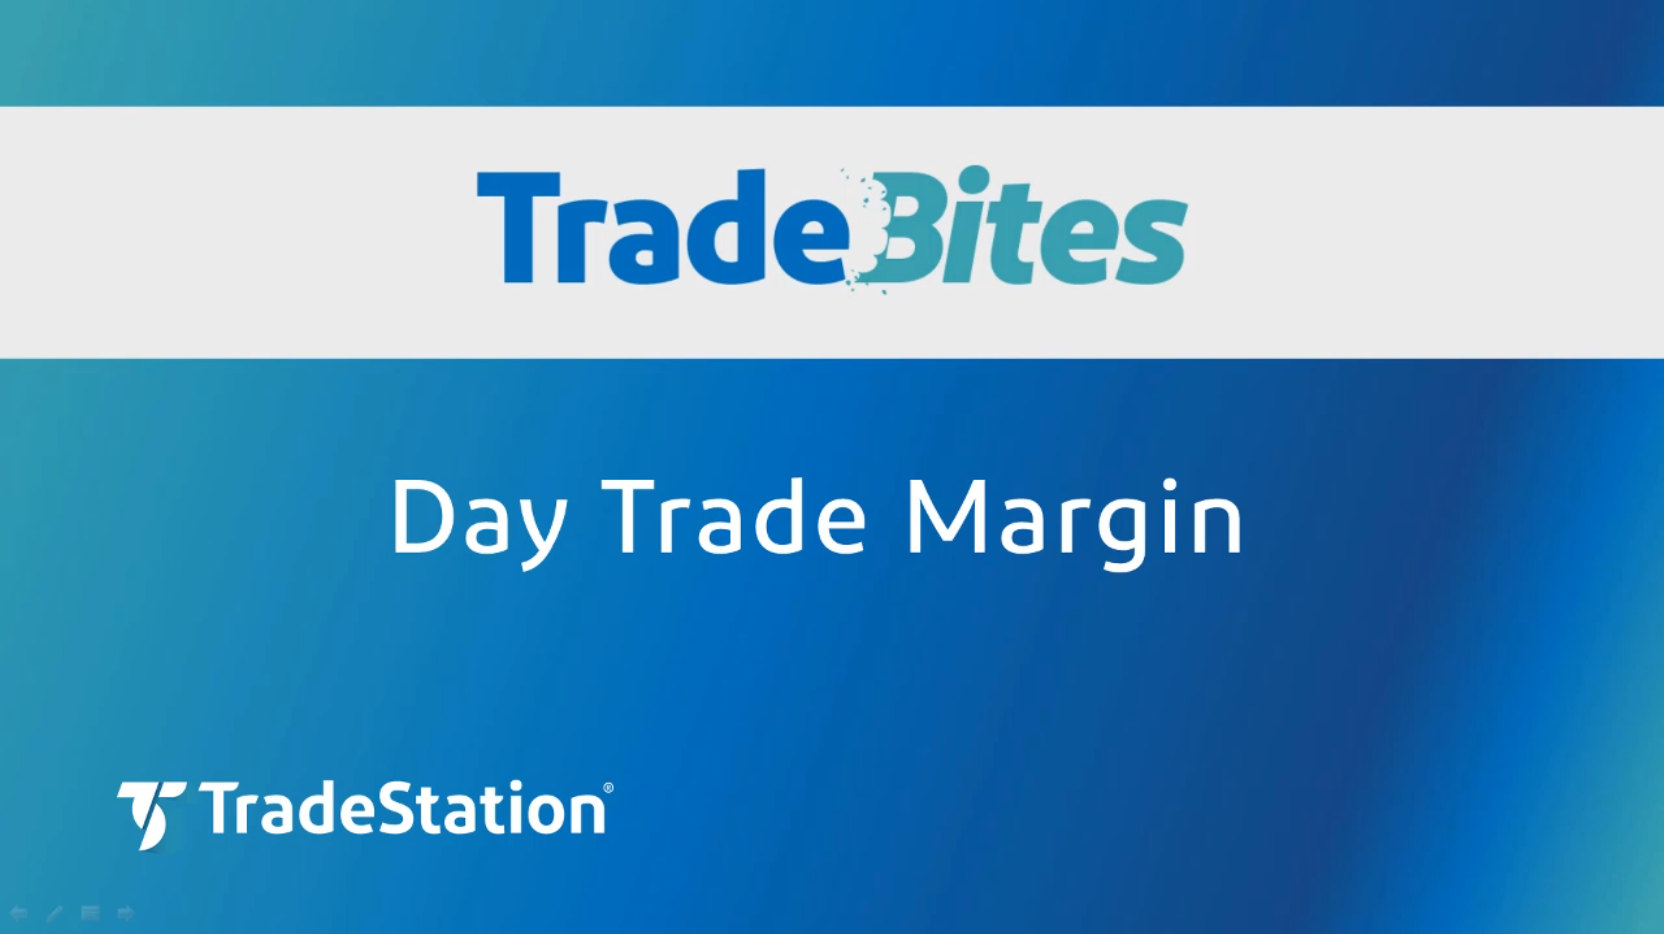 Day Trade Margin